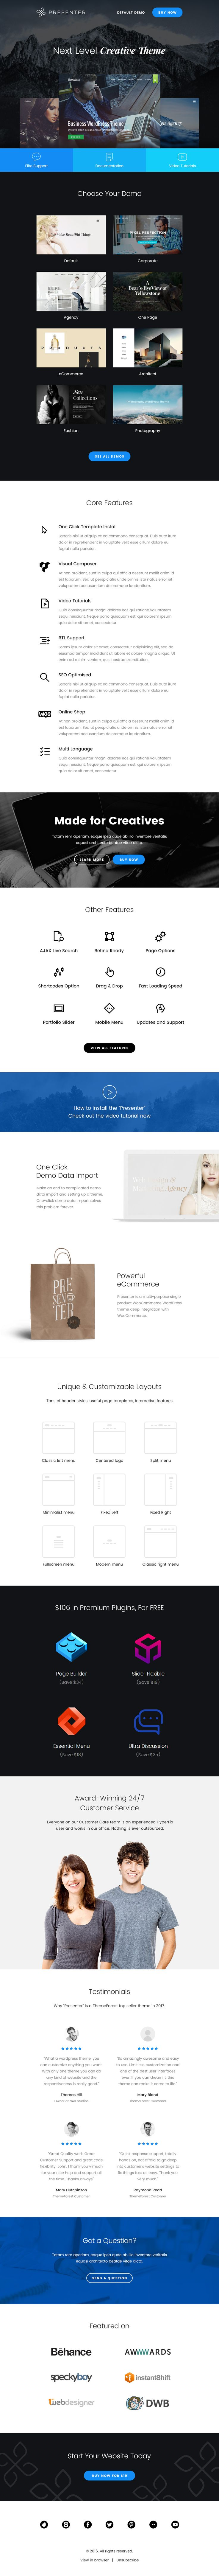 167 best Best HTML Email Templates images on Pinterest | Email ...